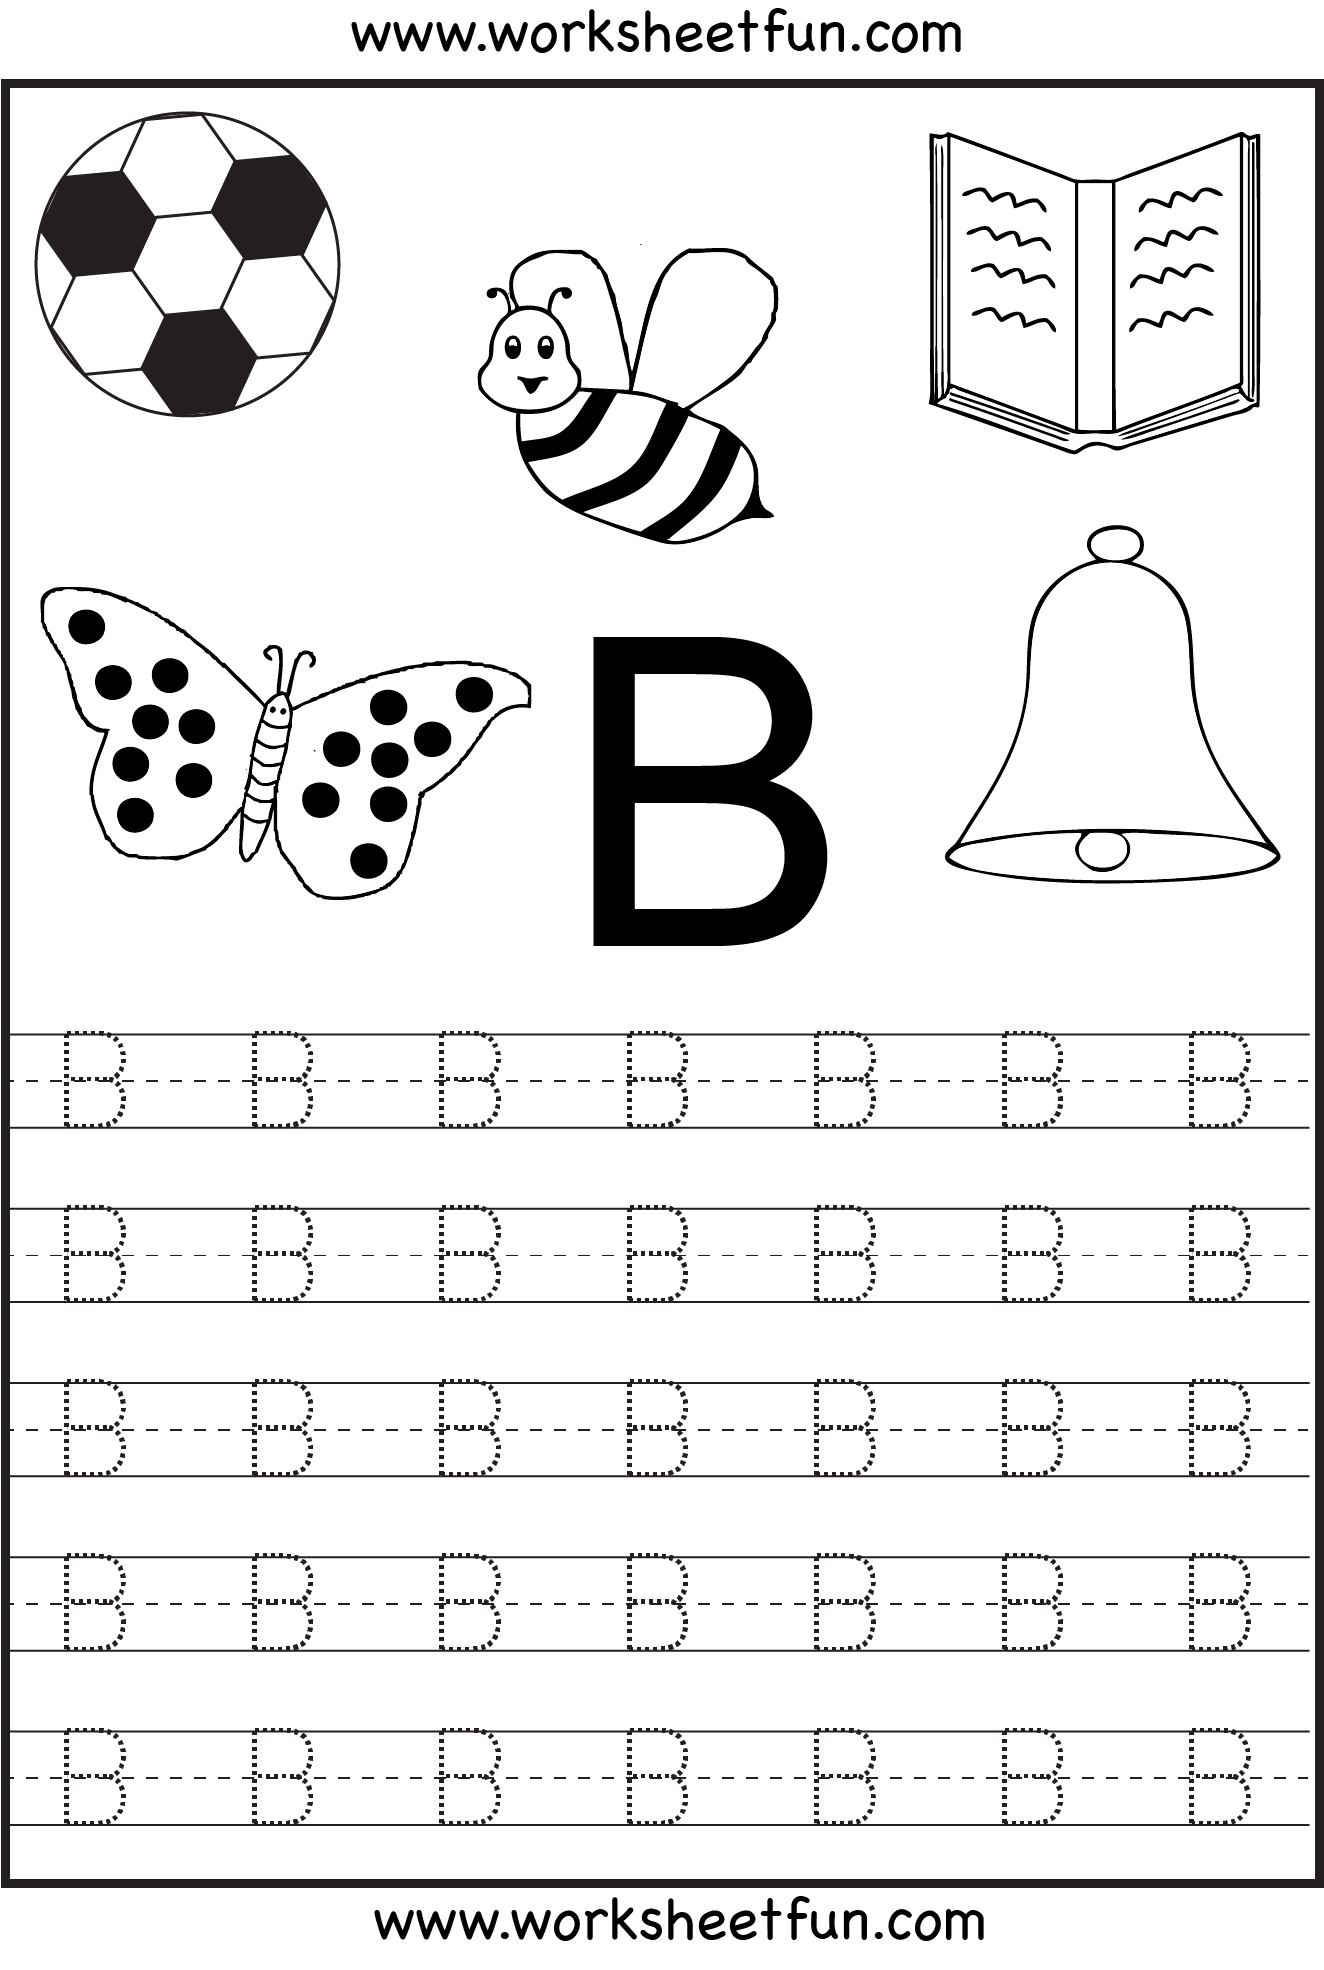 Printables Letter Tracing Worksheets free printable tracing letter g worksheets for preschool kindergarten 26 worksheets